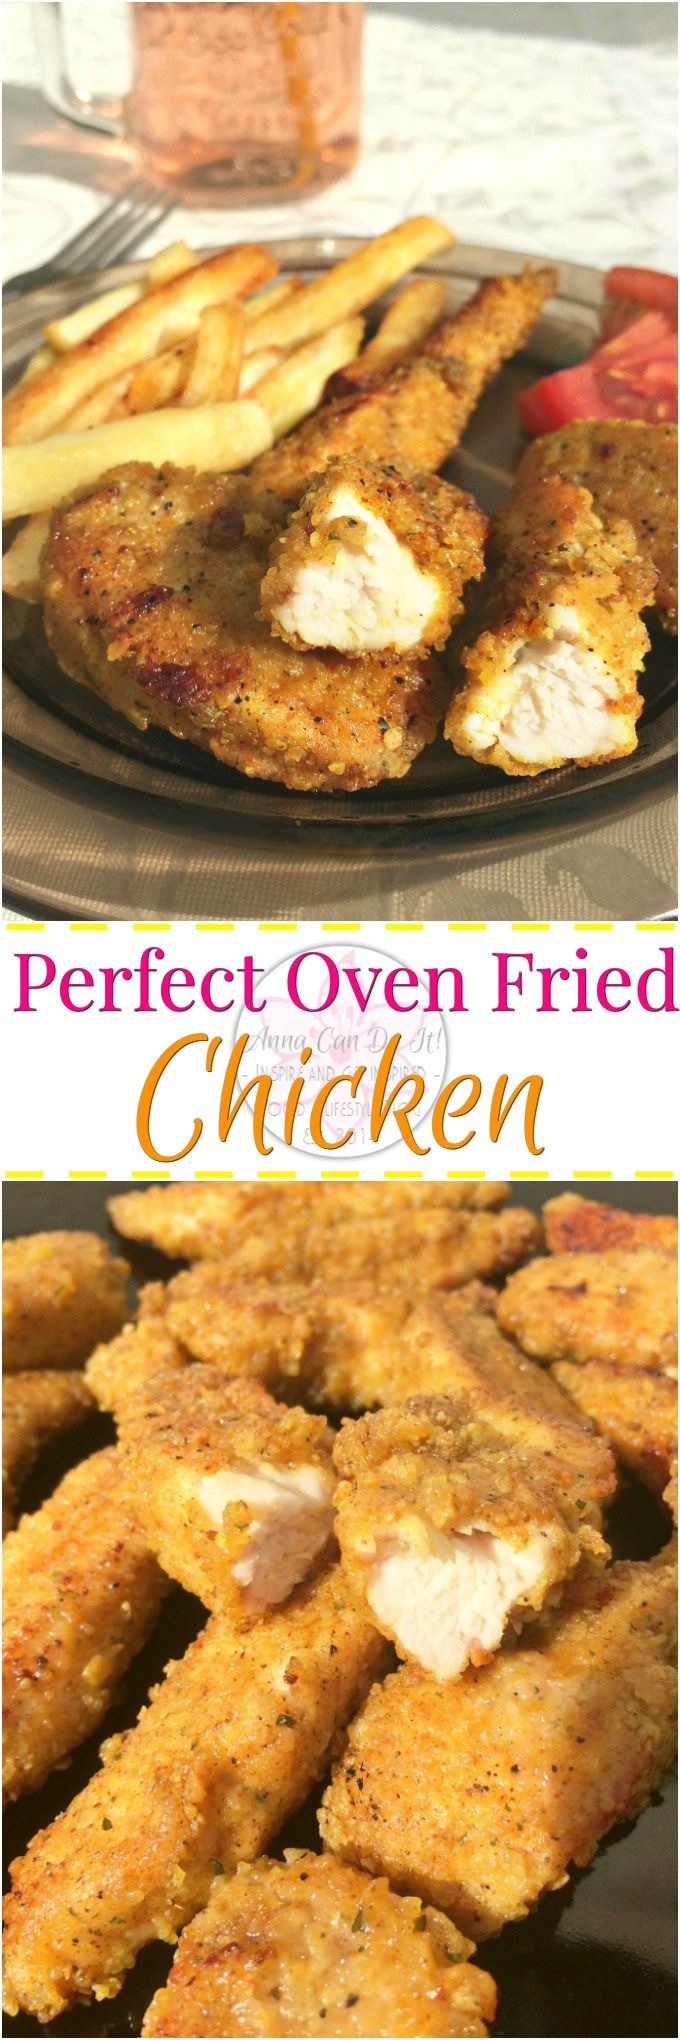 Perfect Oven Fried Chicken